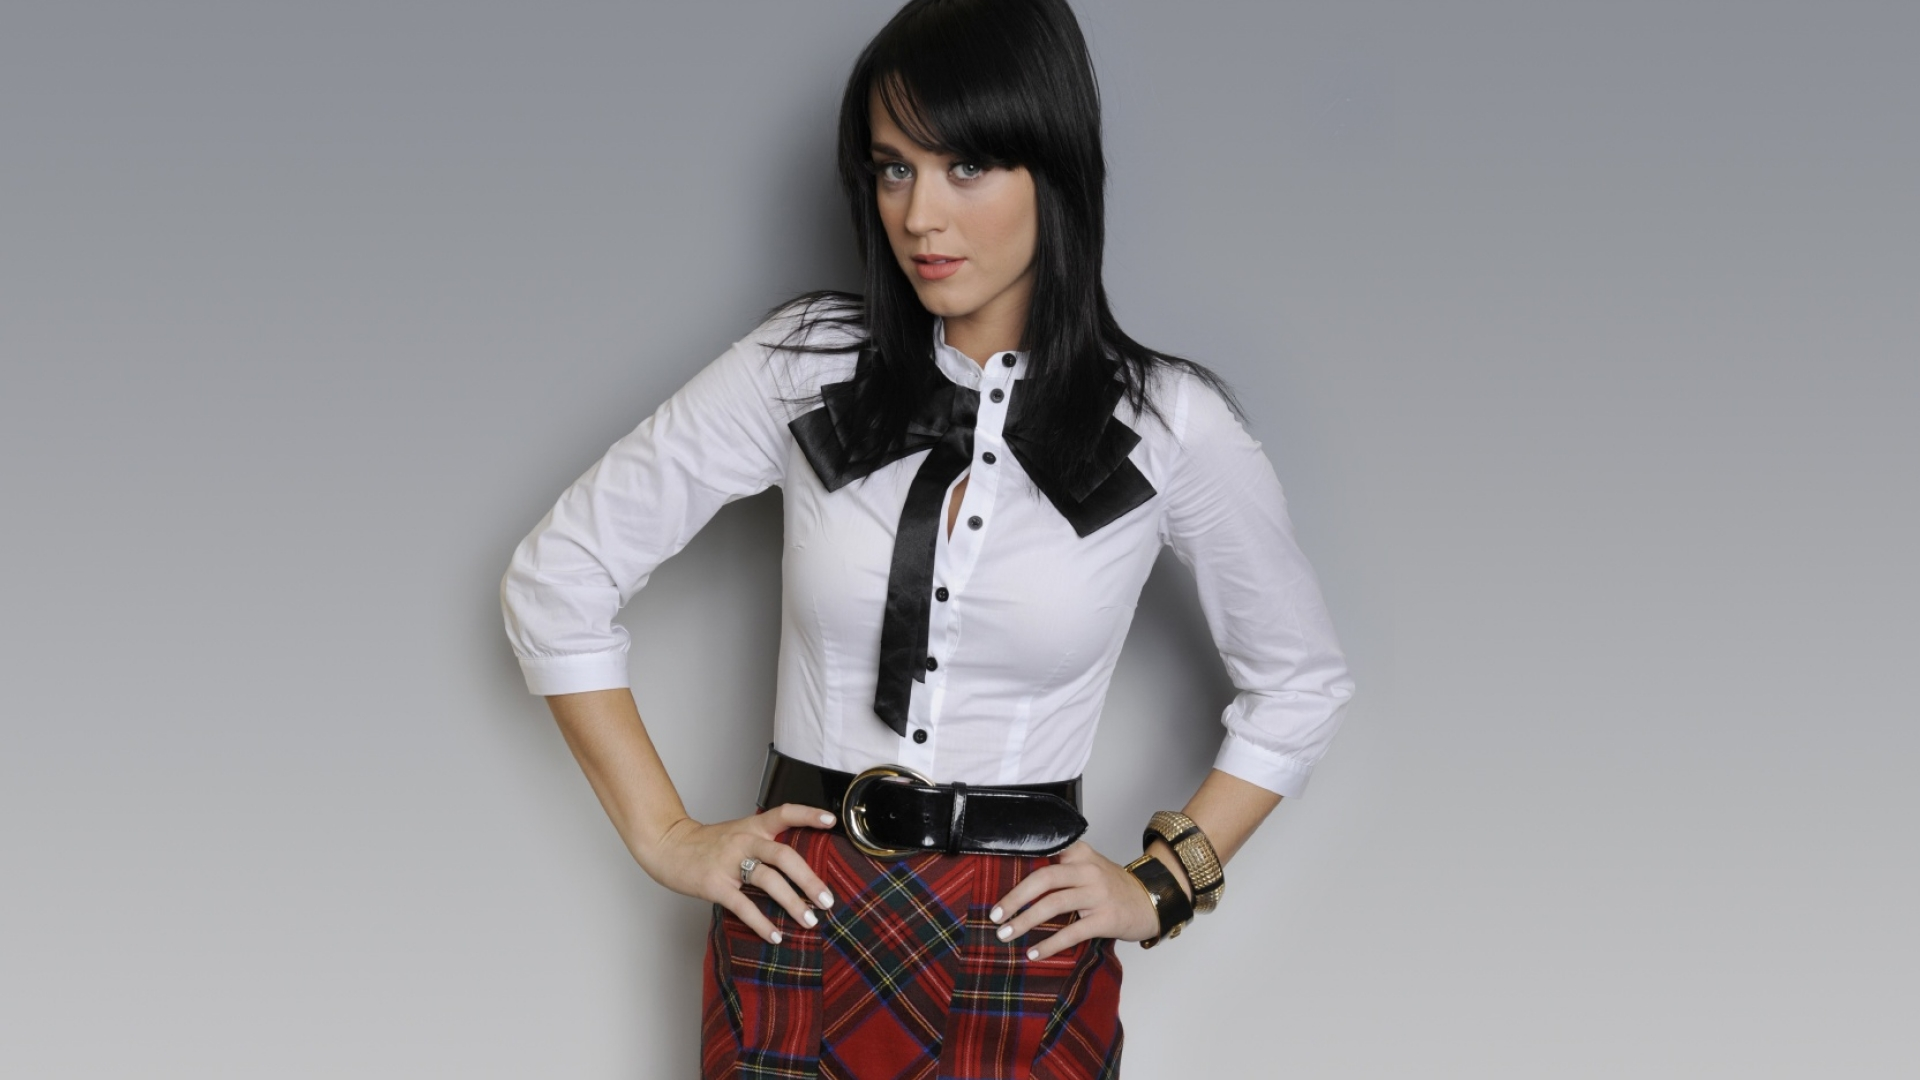 Katy Perry Schoolgirl Outfit Wallpaper  964425